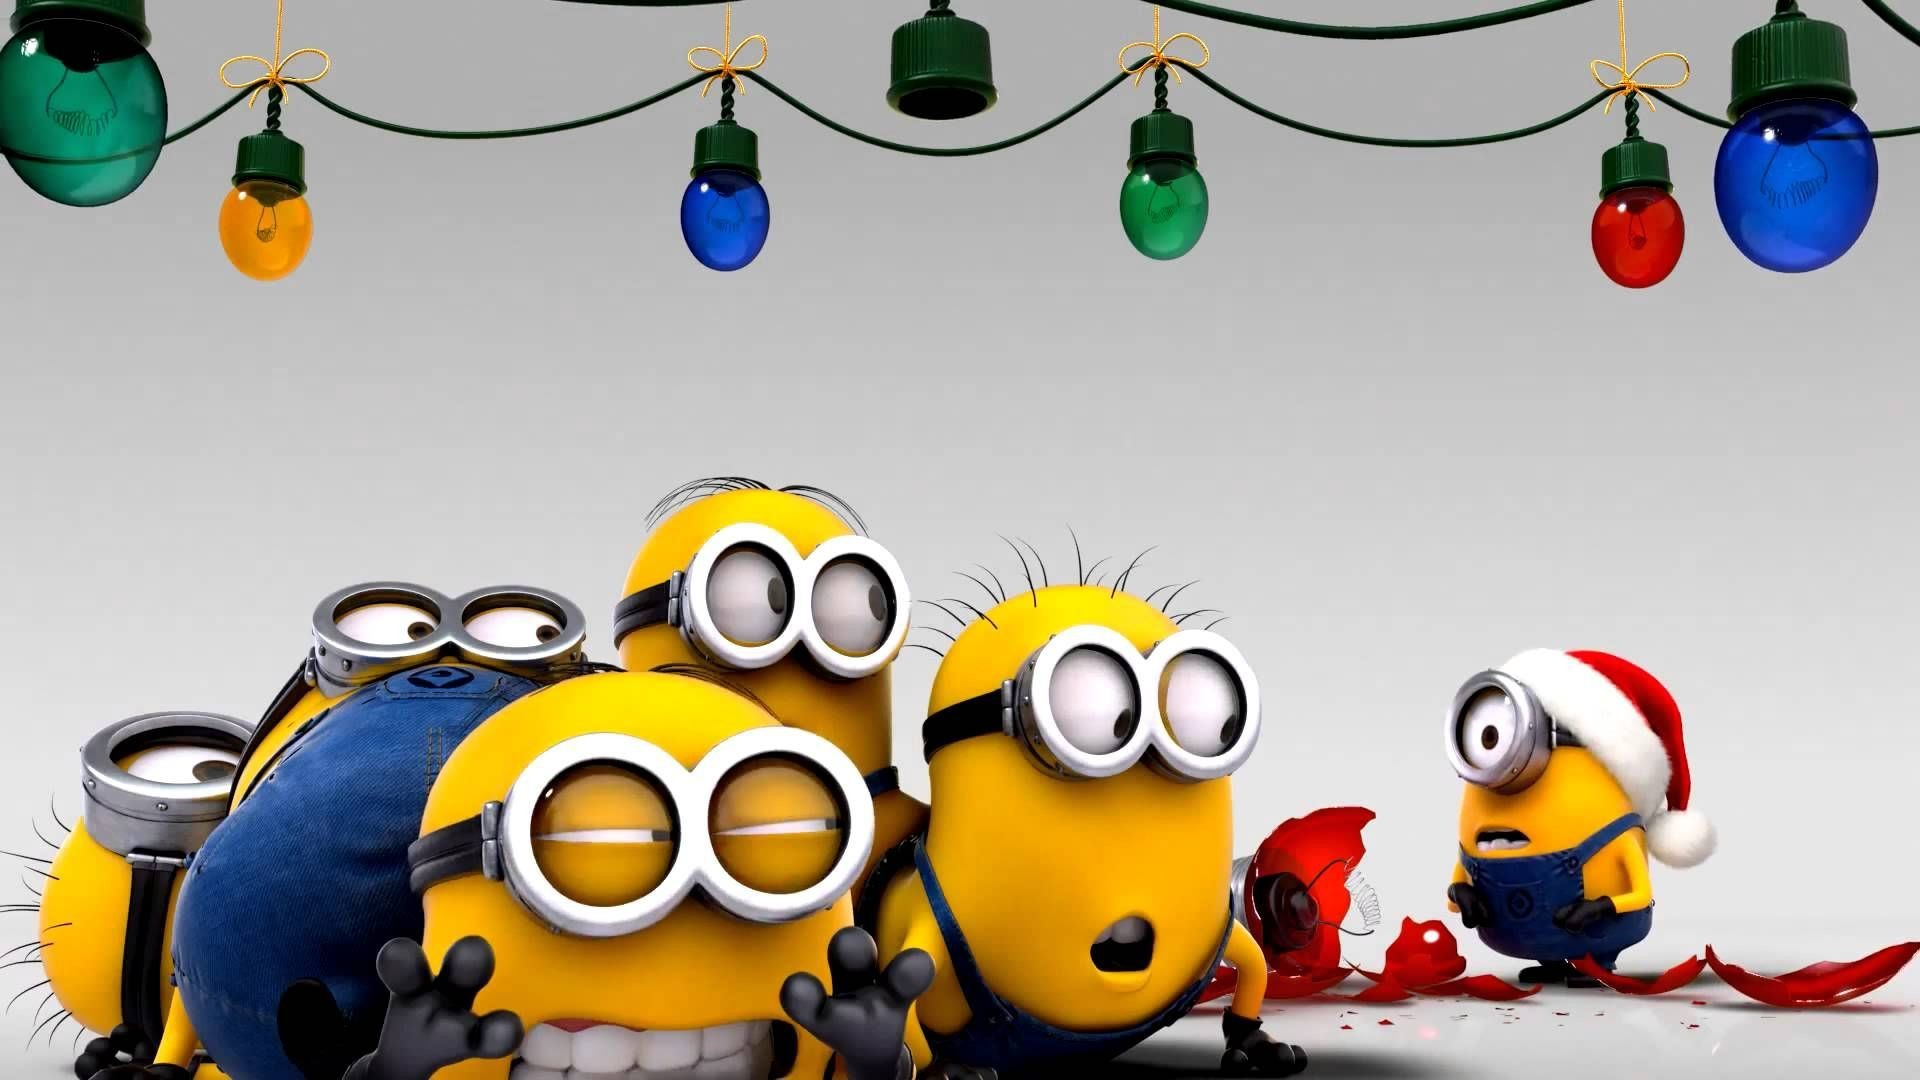 Minion christmas wallpaper 61 images - Free funny christmas desktop wallpaper ...